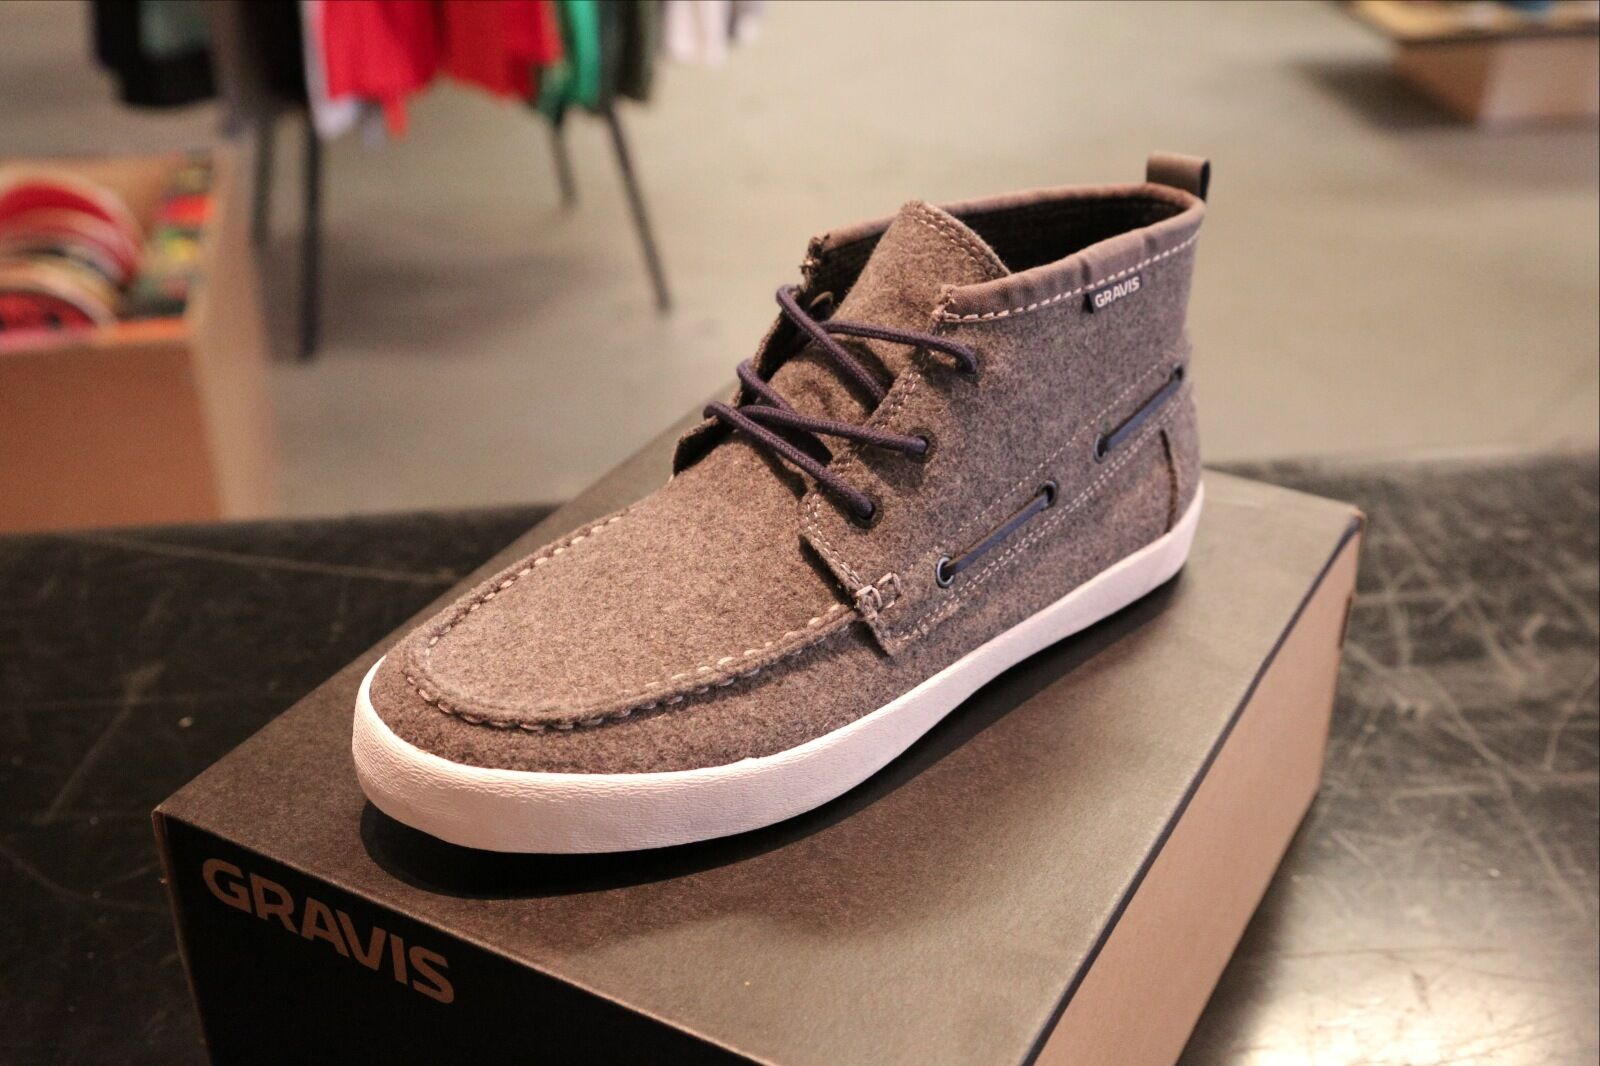 Gravis Yachtmaster MID Pewter Size 8